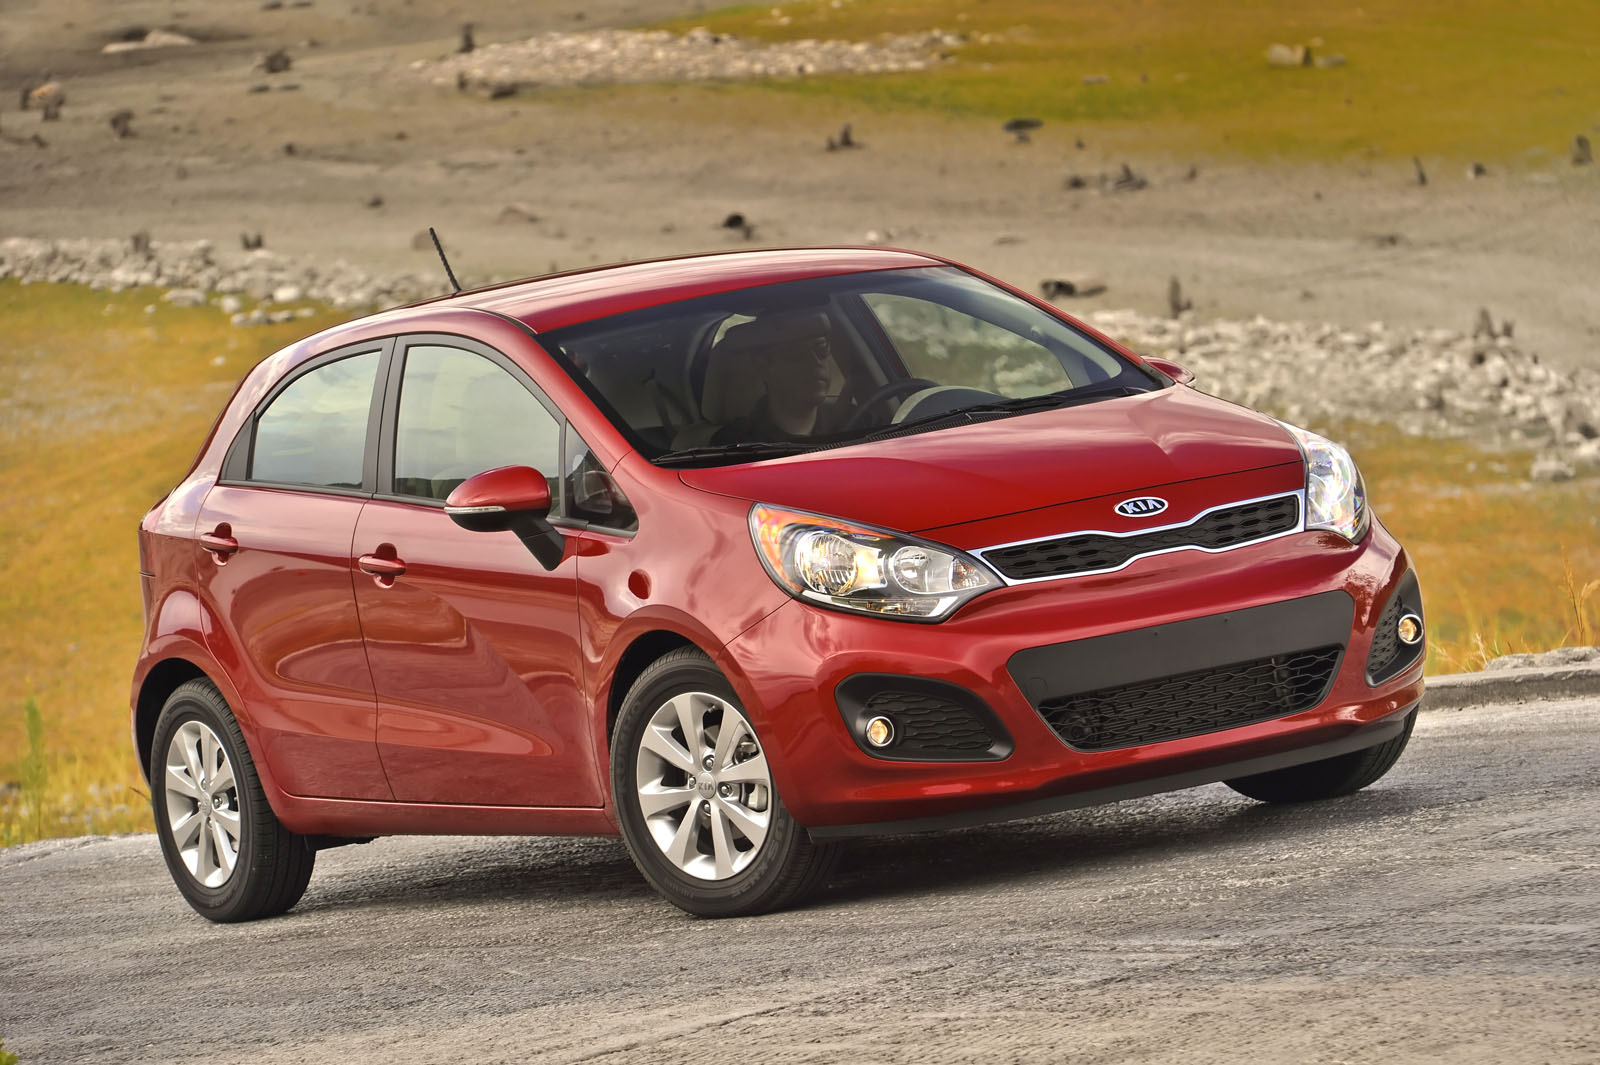 2012 kia rio review ratings specs prices and photos the car connection. Black Bedroom Furniture Sets. Home Design Ideas